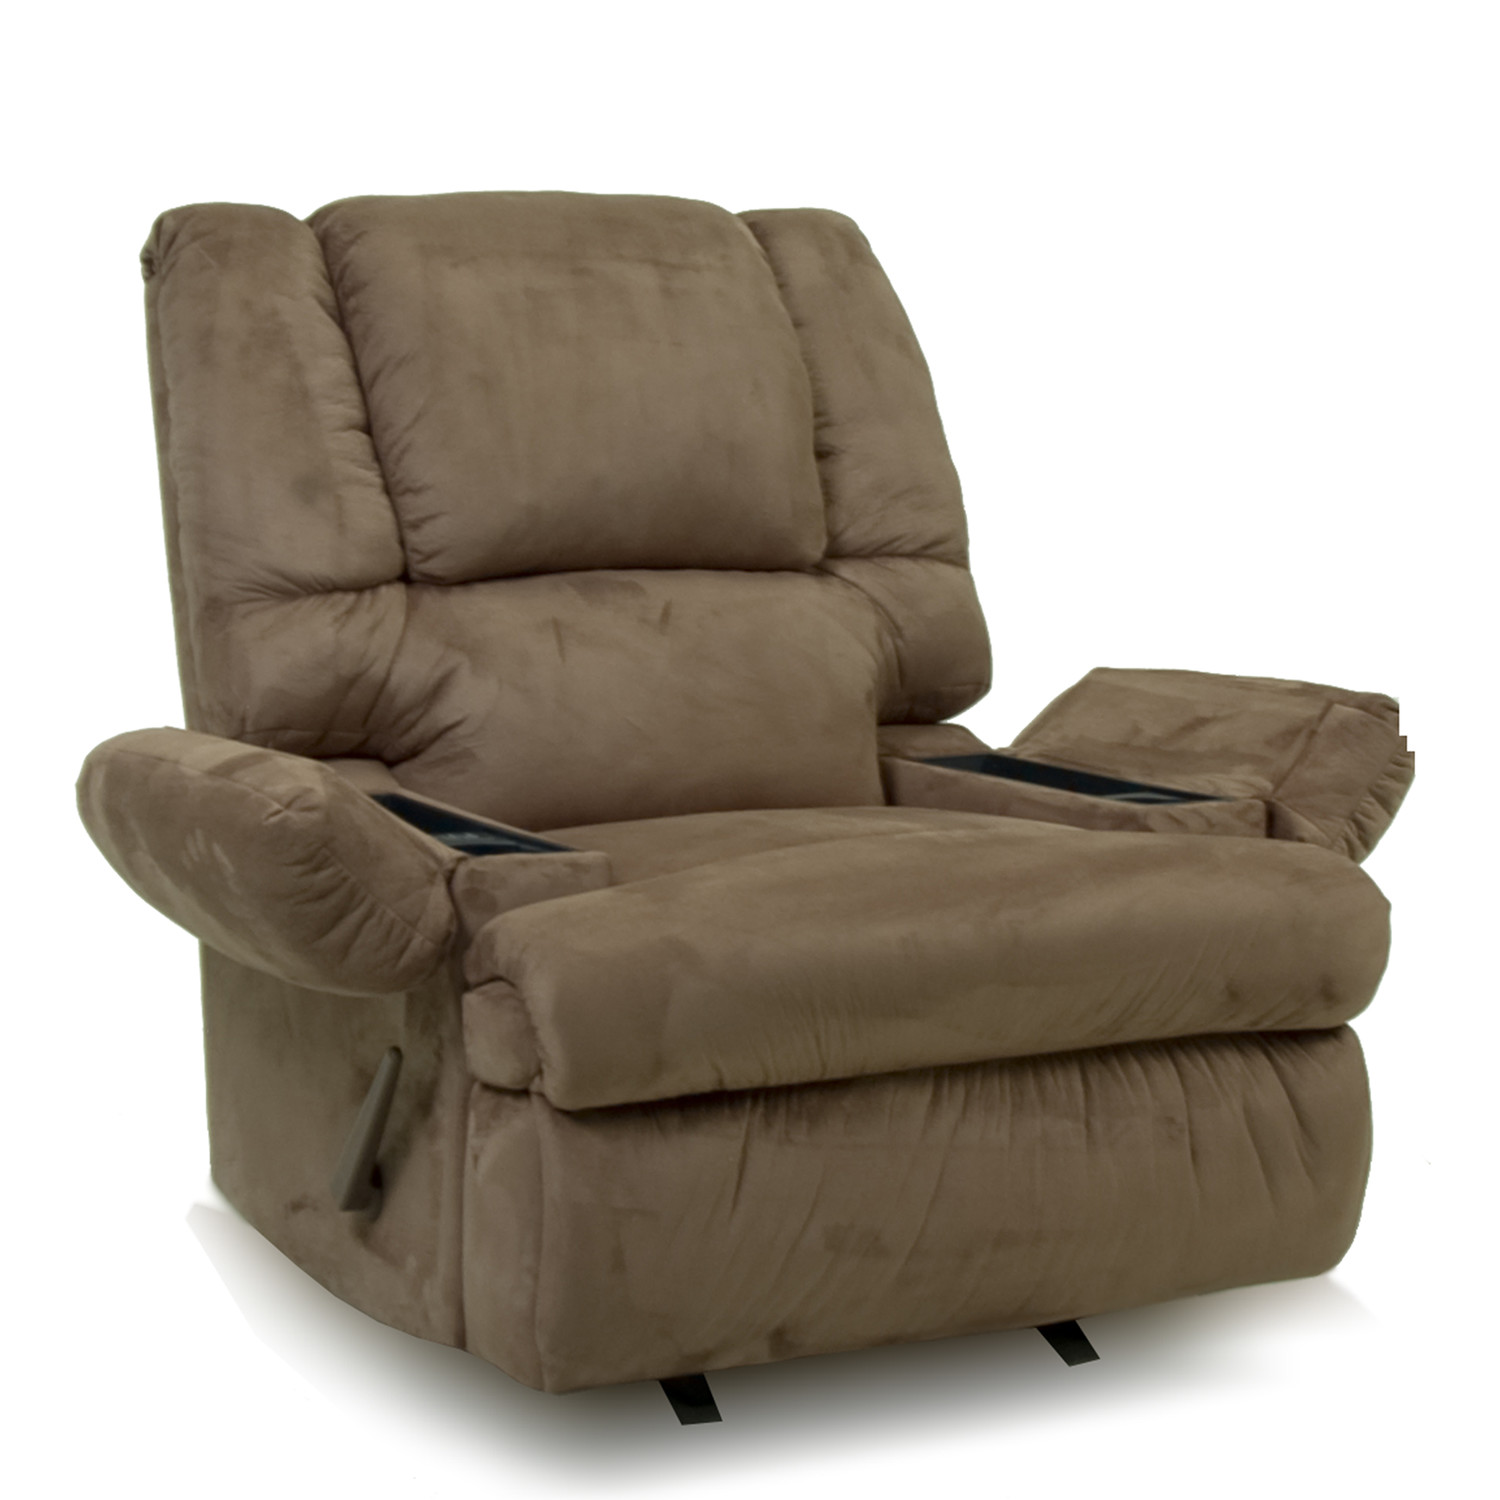 Most comfortable recliner homesfeed for Chair recliner